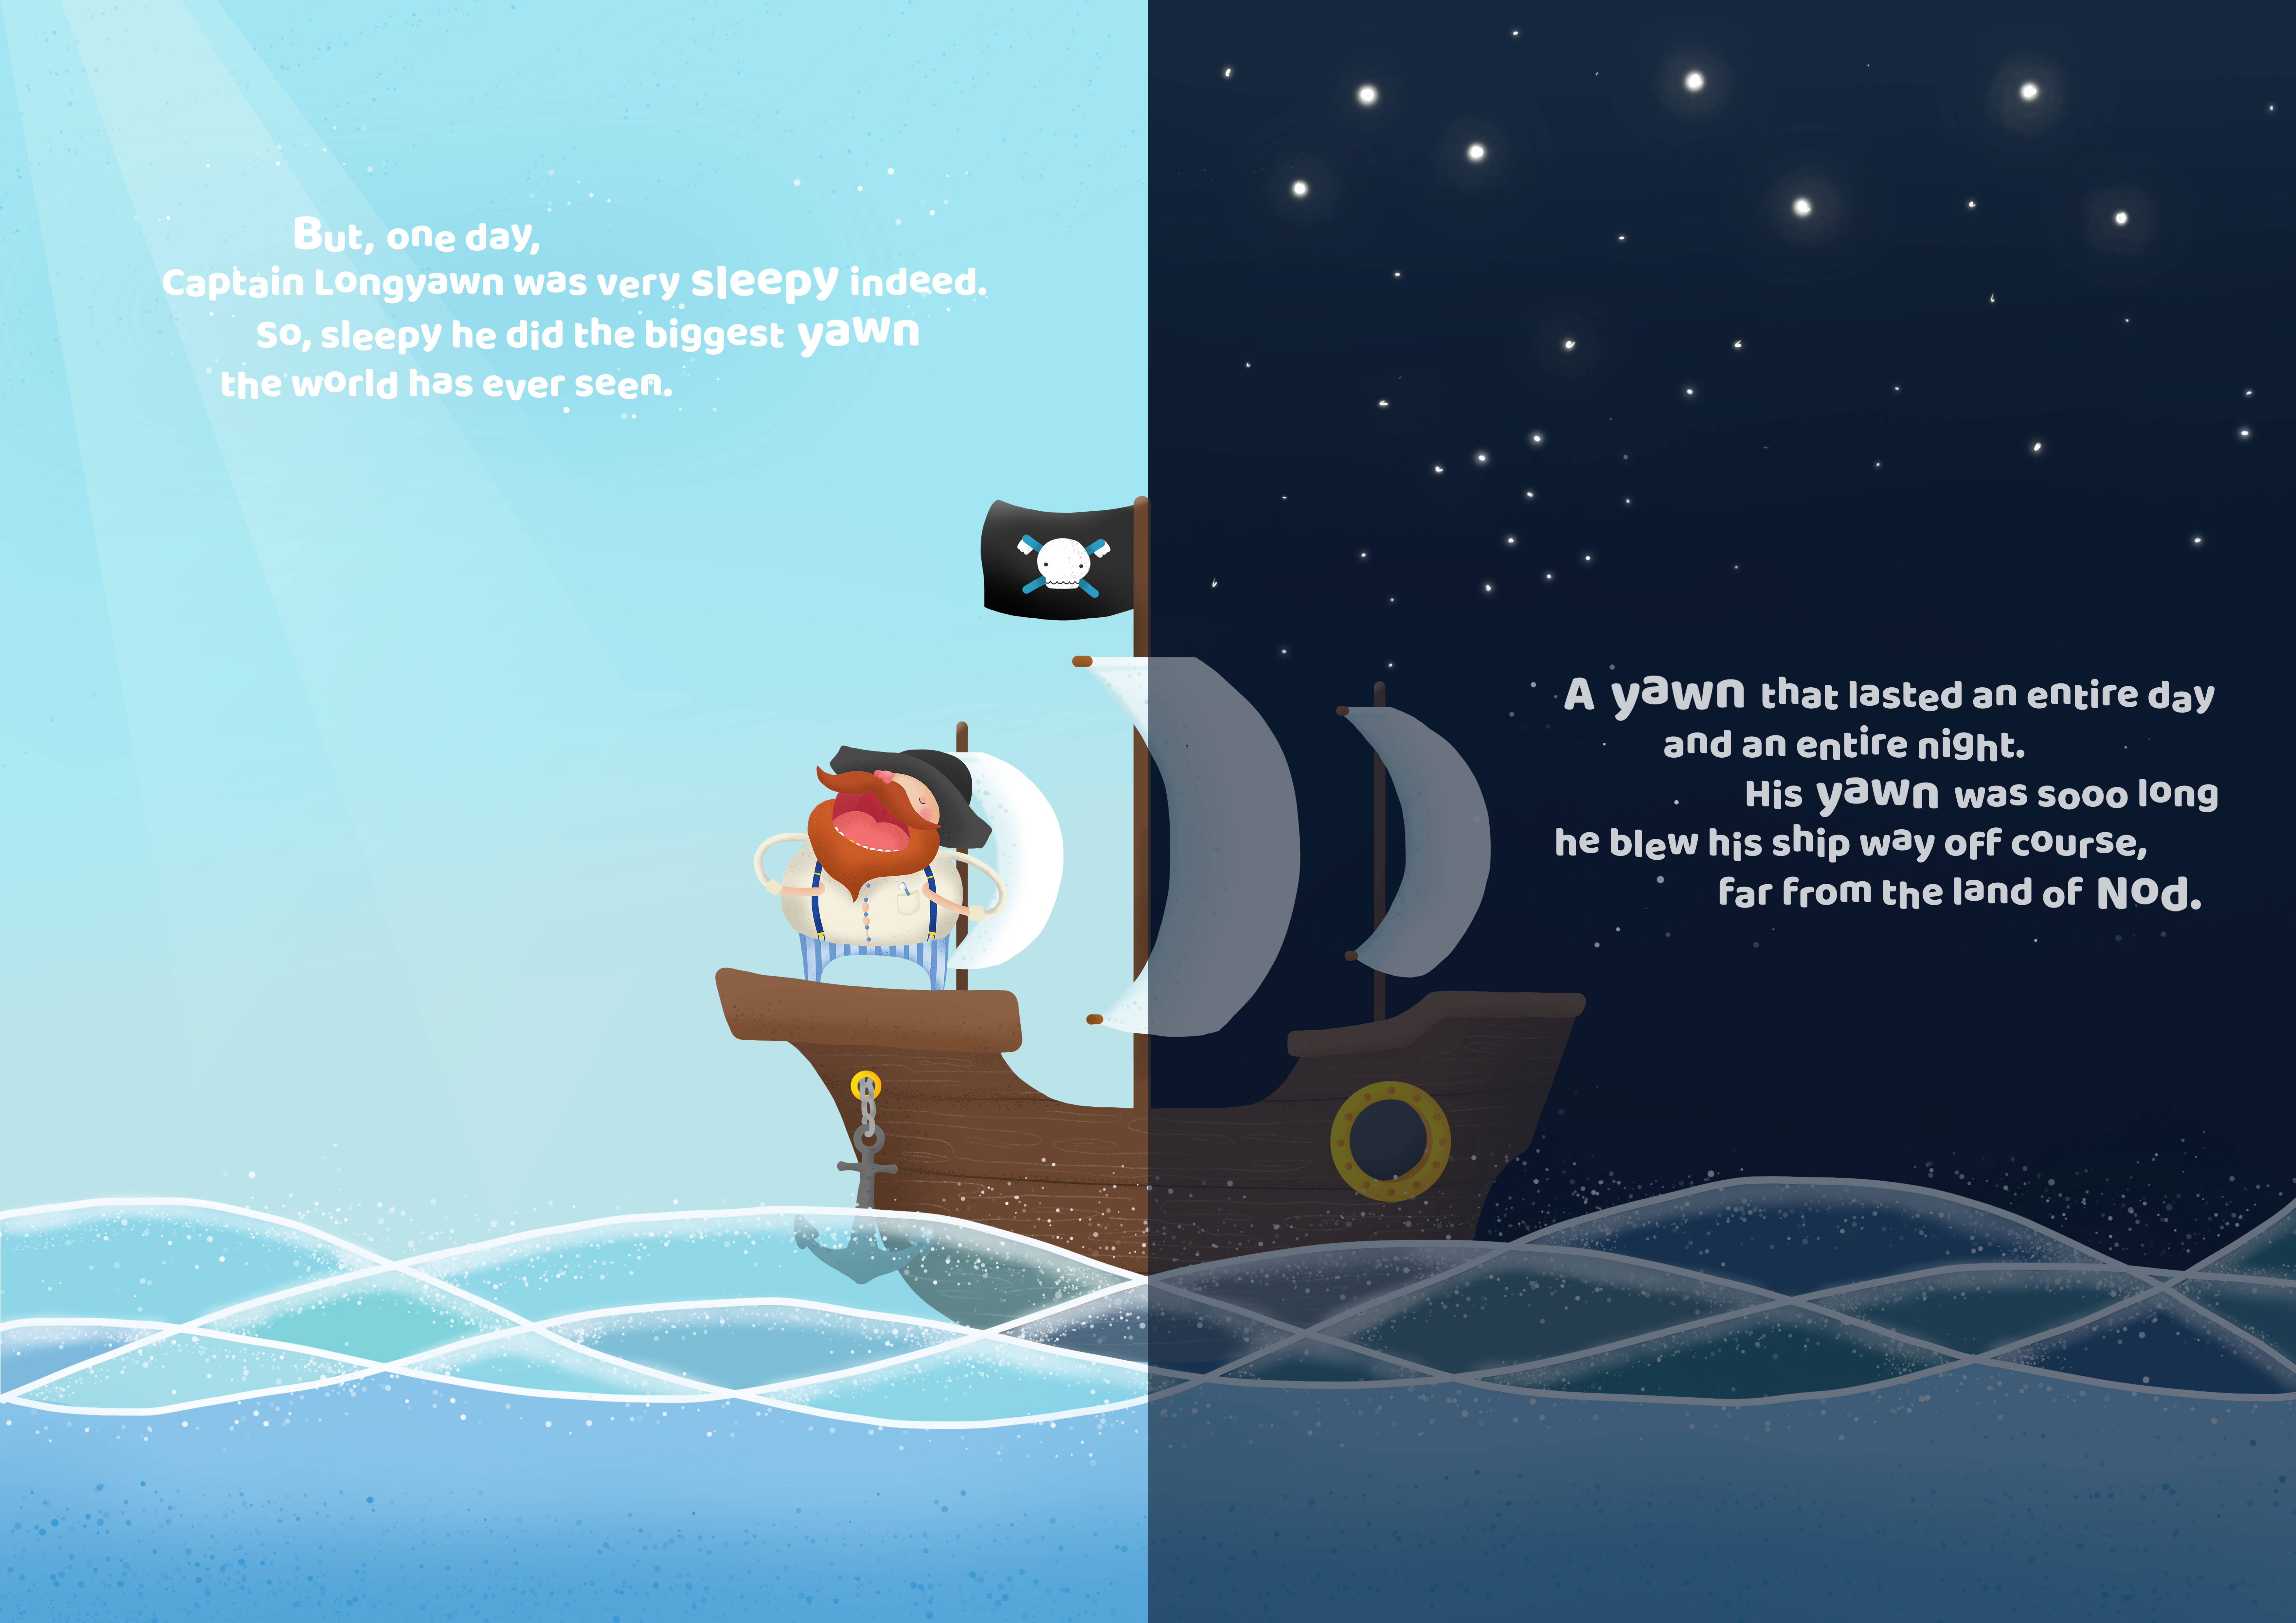 Ship_and_water_day and night